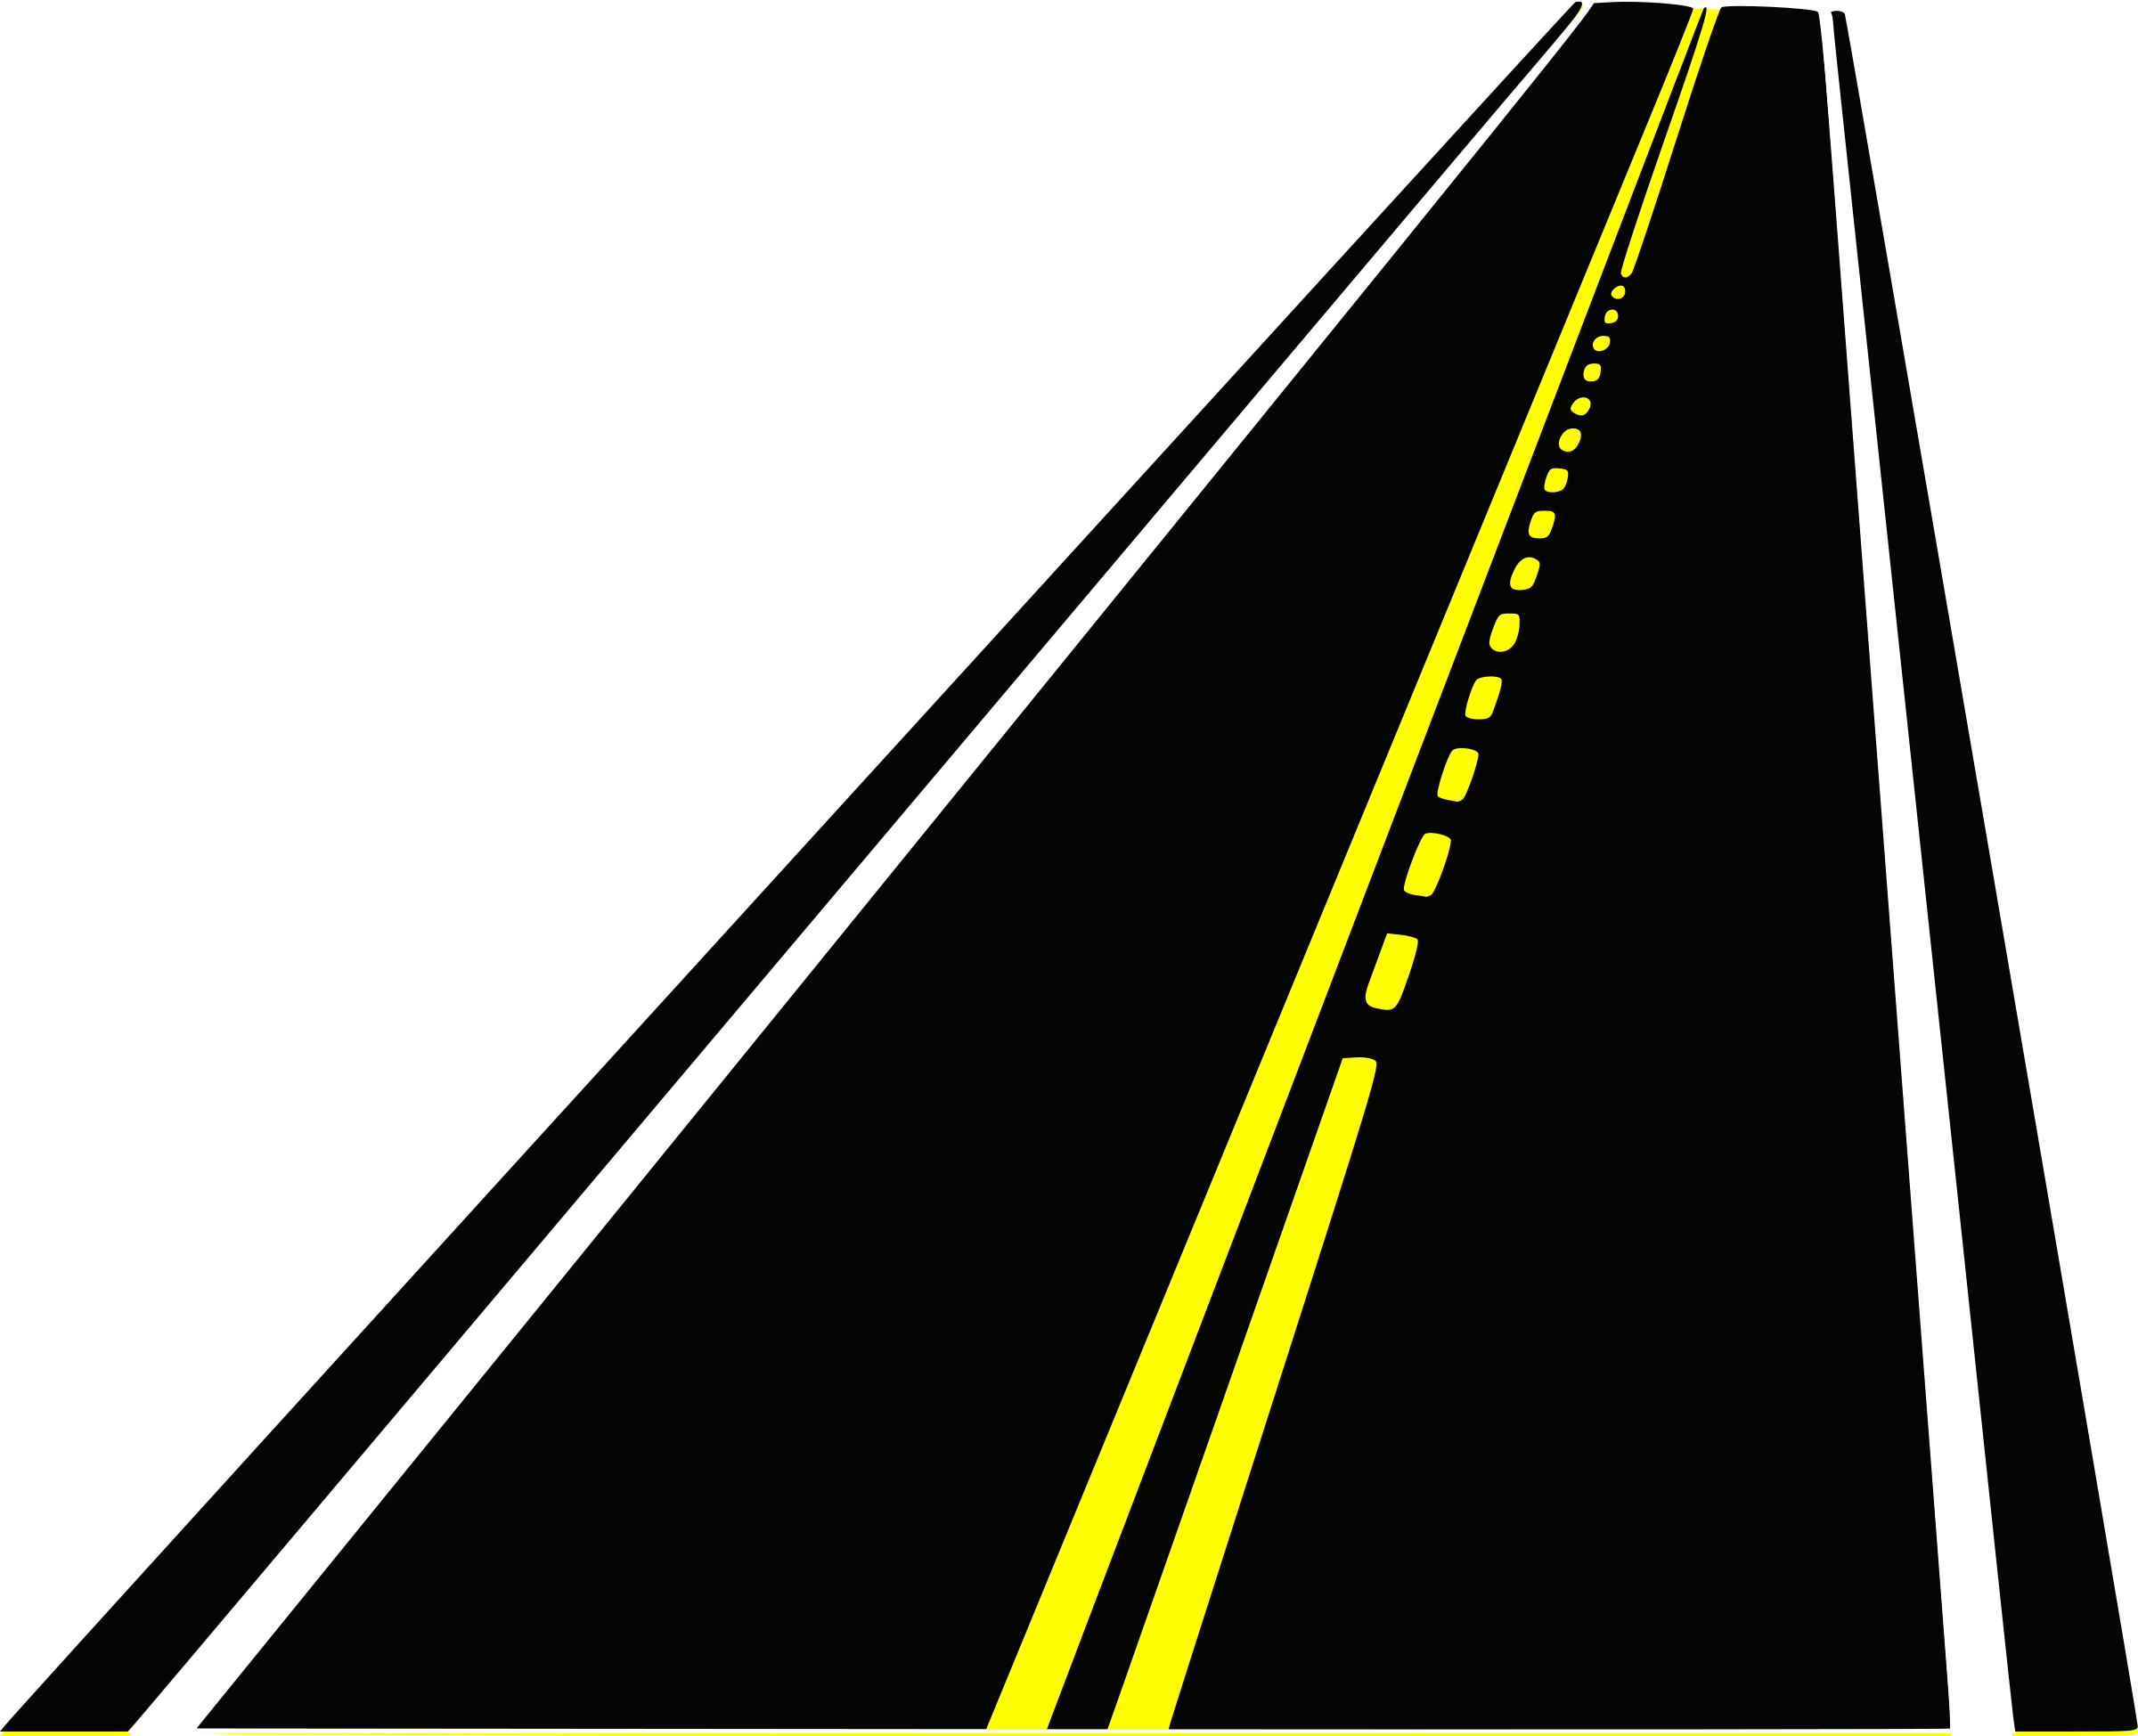 Free clipart highway picture transparent stock Free Roadway Cliparts, Download Free Clip Art, Free Clip Art on ... picture transparent stock